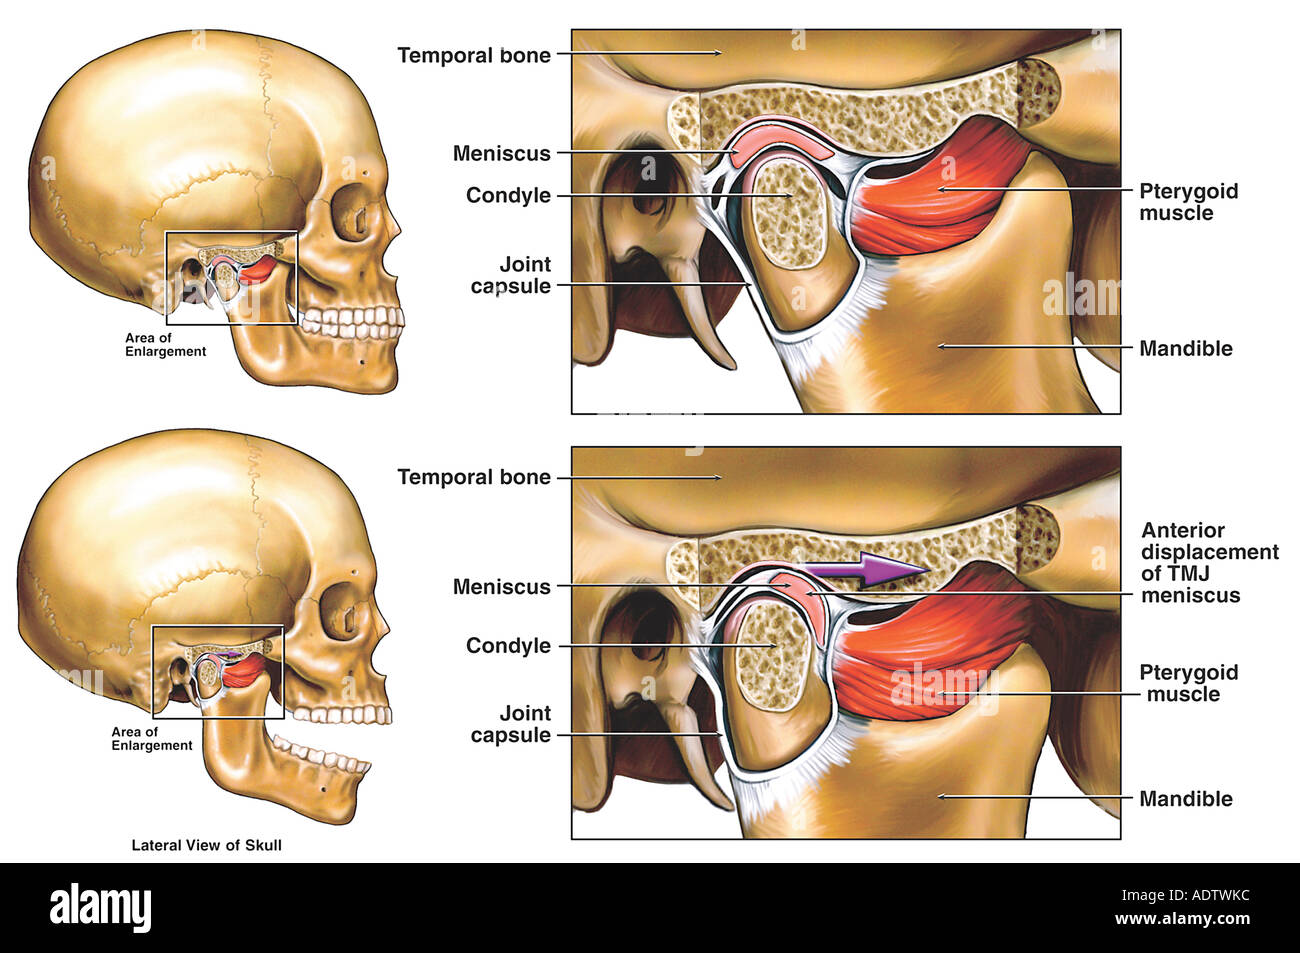 Anterior Displacement of the Right Temporomandibular Joint (TMJ ...